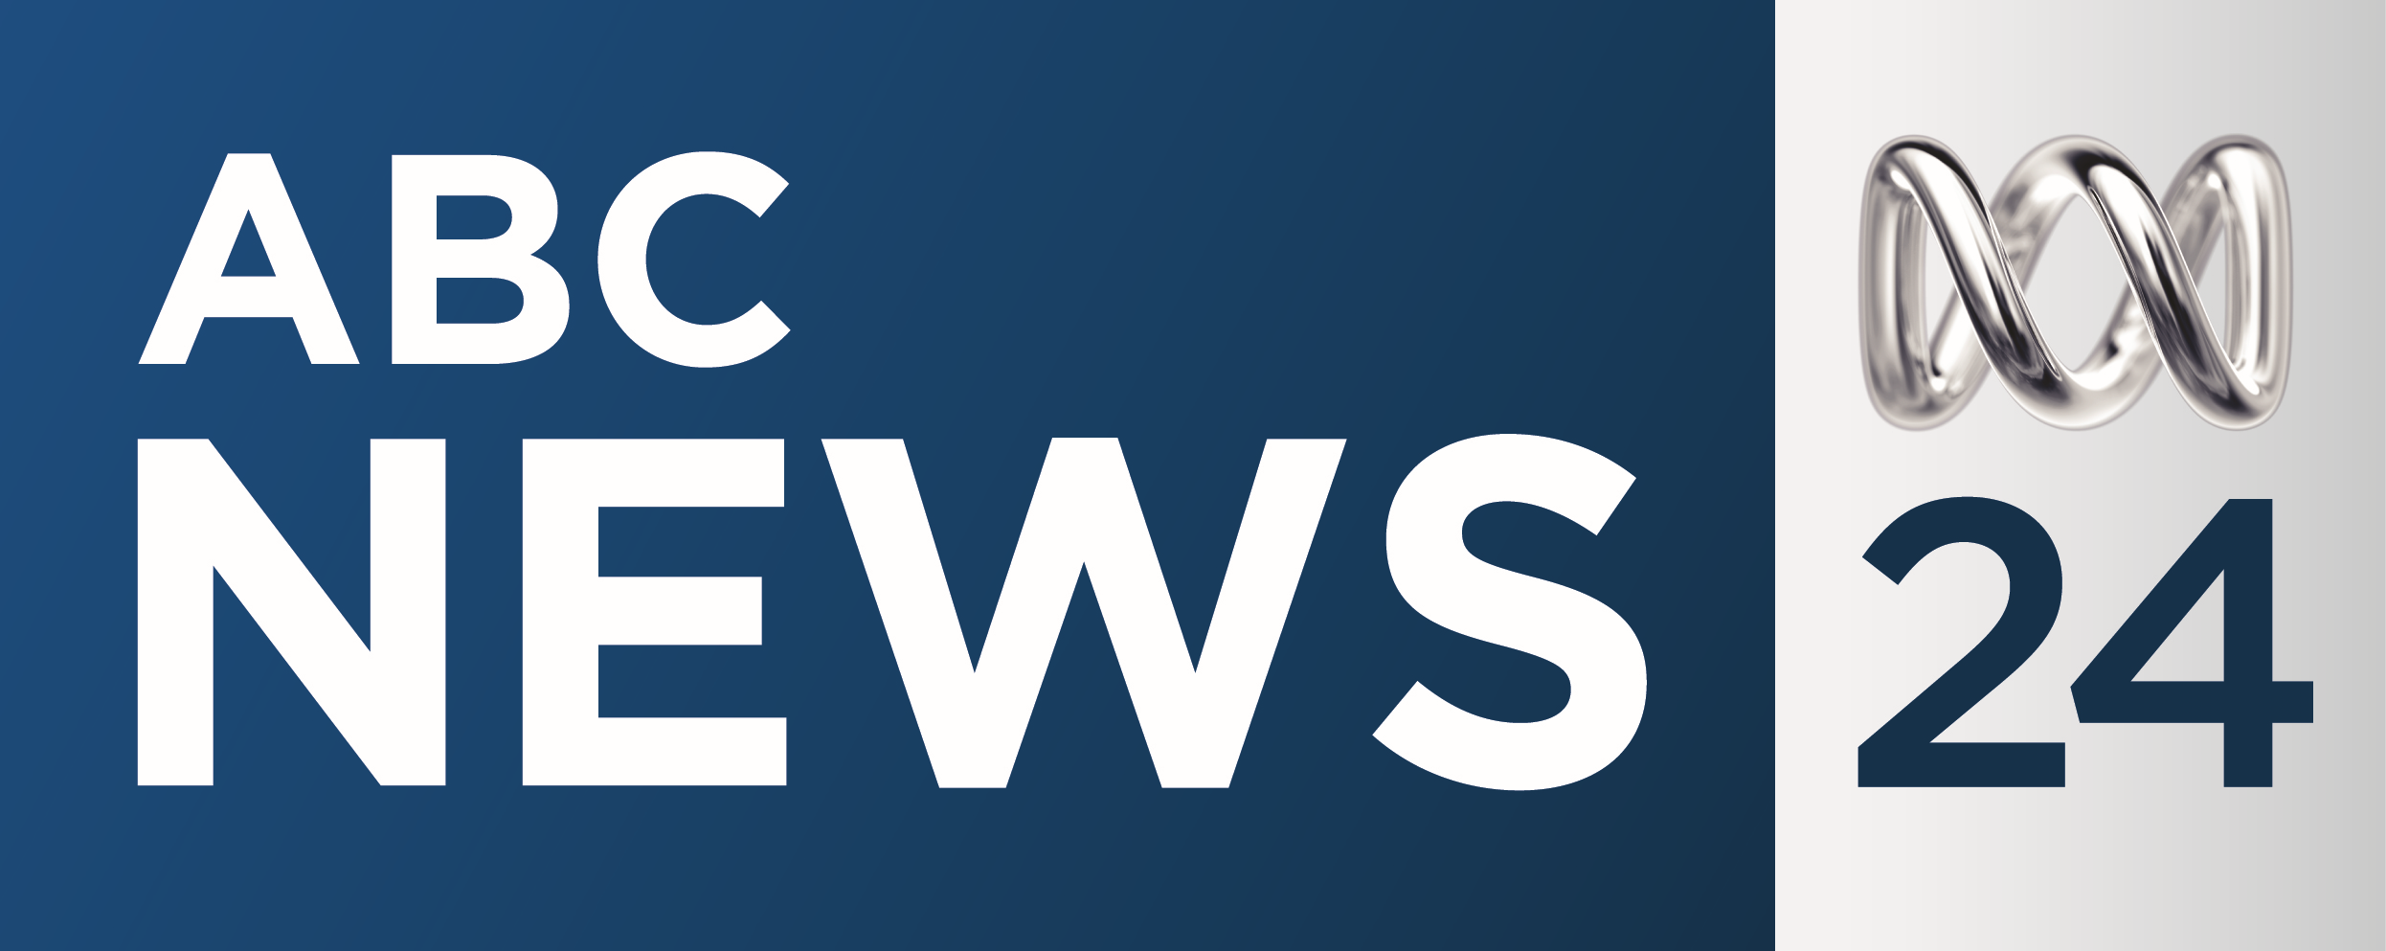 File:ABC News 24.png